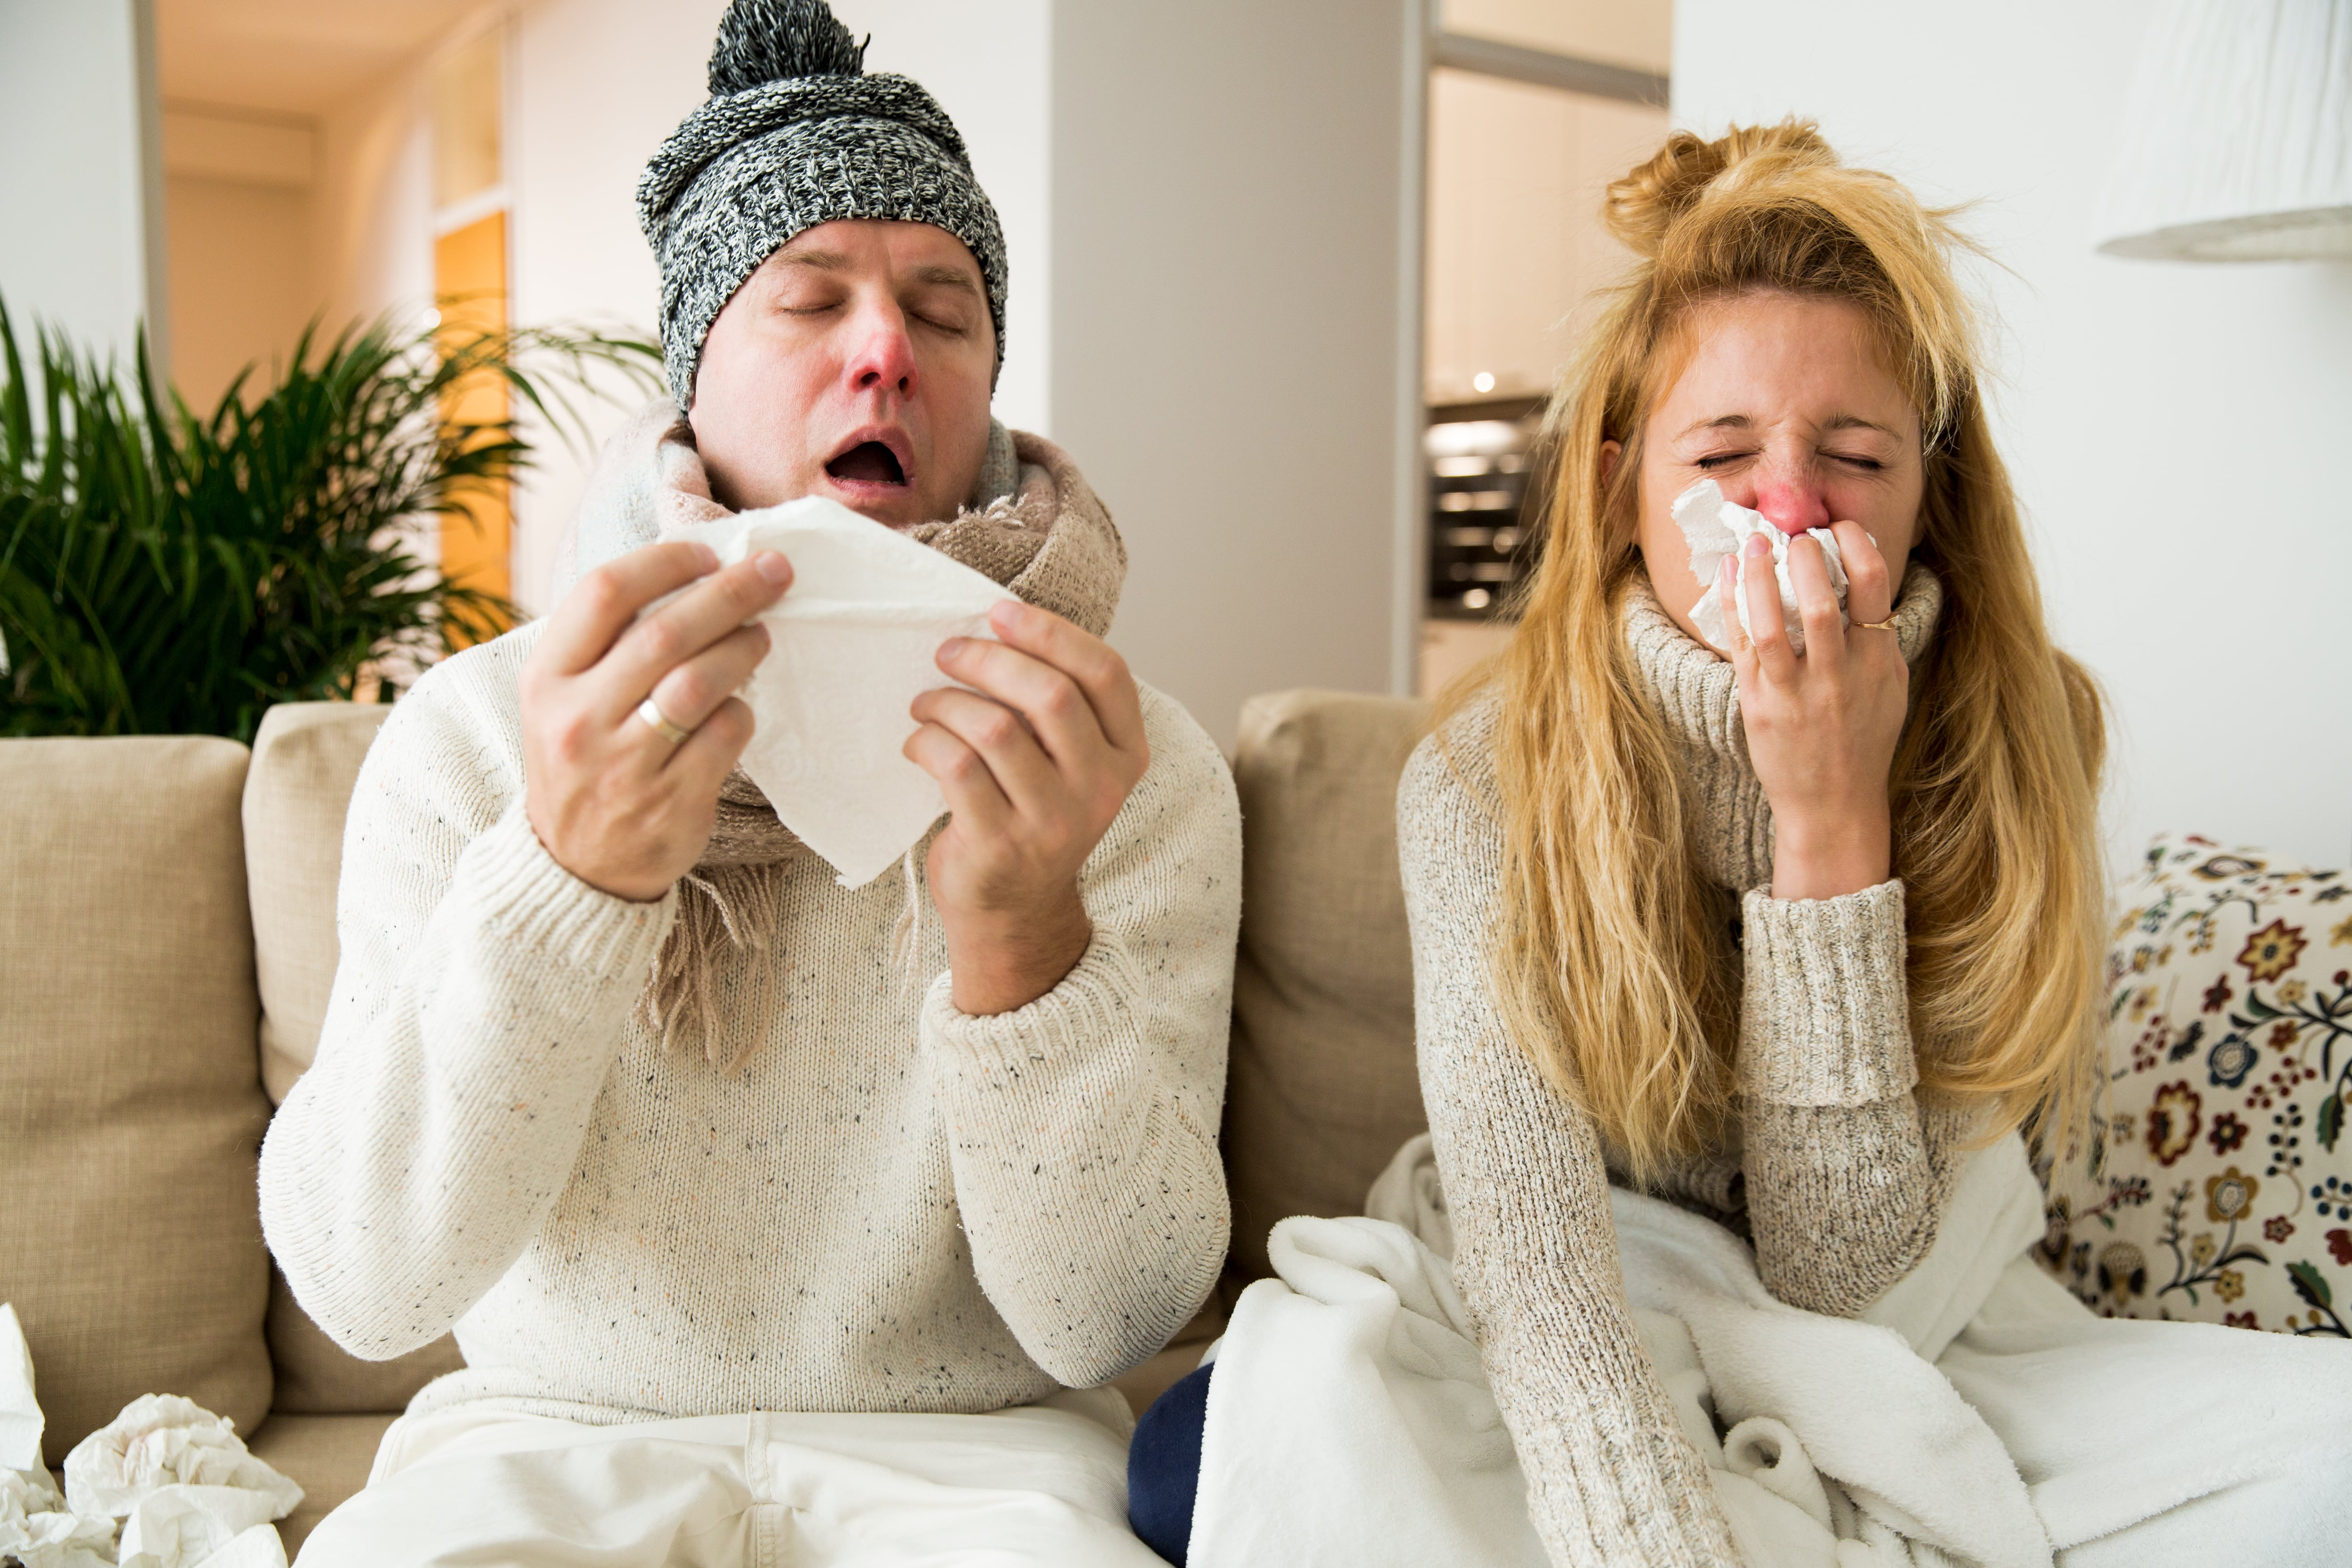 A sick couple sitting on the couch in sweaters blowing their noses and coughing